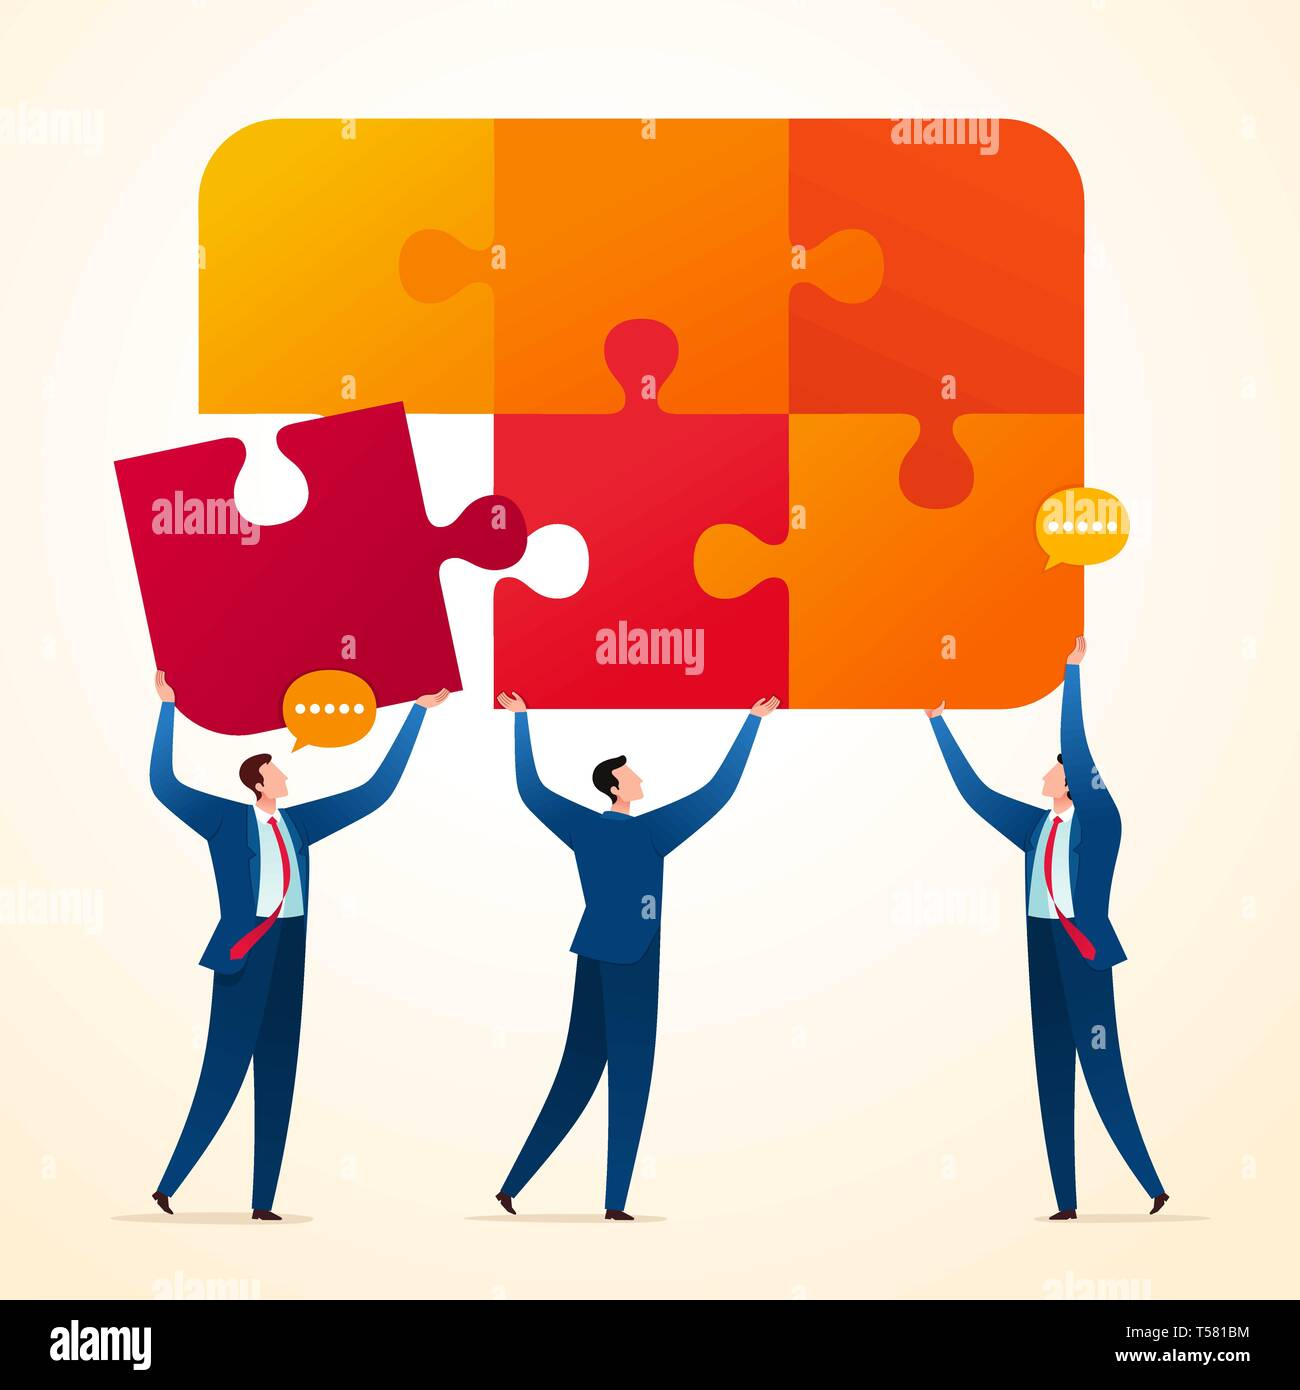 Uniting puzzle piece to get final integrated system. Business teamwork concept illustration. - Stock Vector